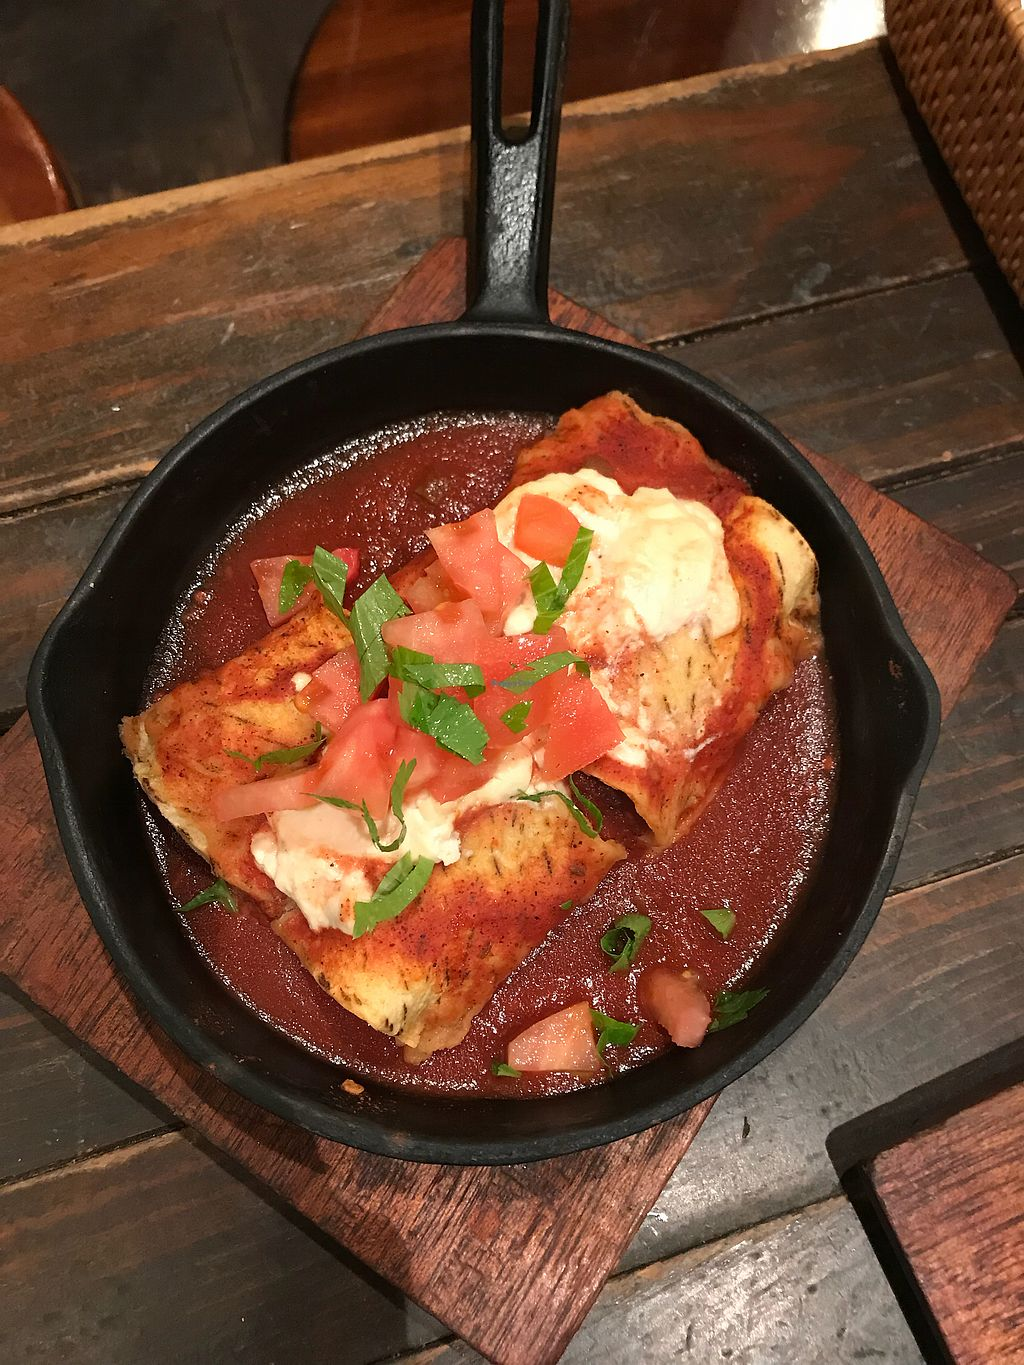 """Photo of Otis!  by <a href=""""/members/profile/JoannaWatts"""">JoannaWatts</a> <br/>Loved the enchiladas with vegan cheese <br/> April 17, 2018  - <a href='/contact/abuse/image/12703/387196'>Report</a>"""